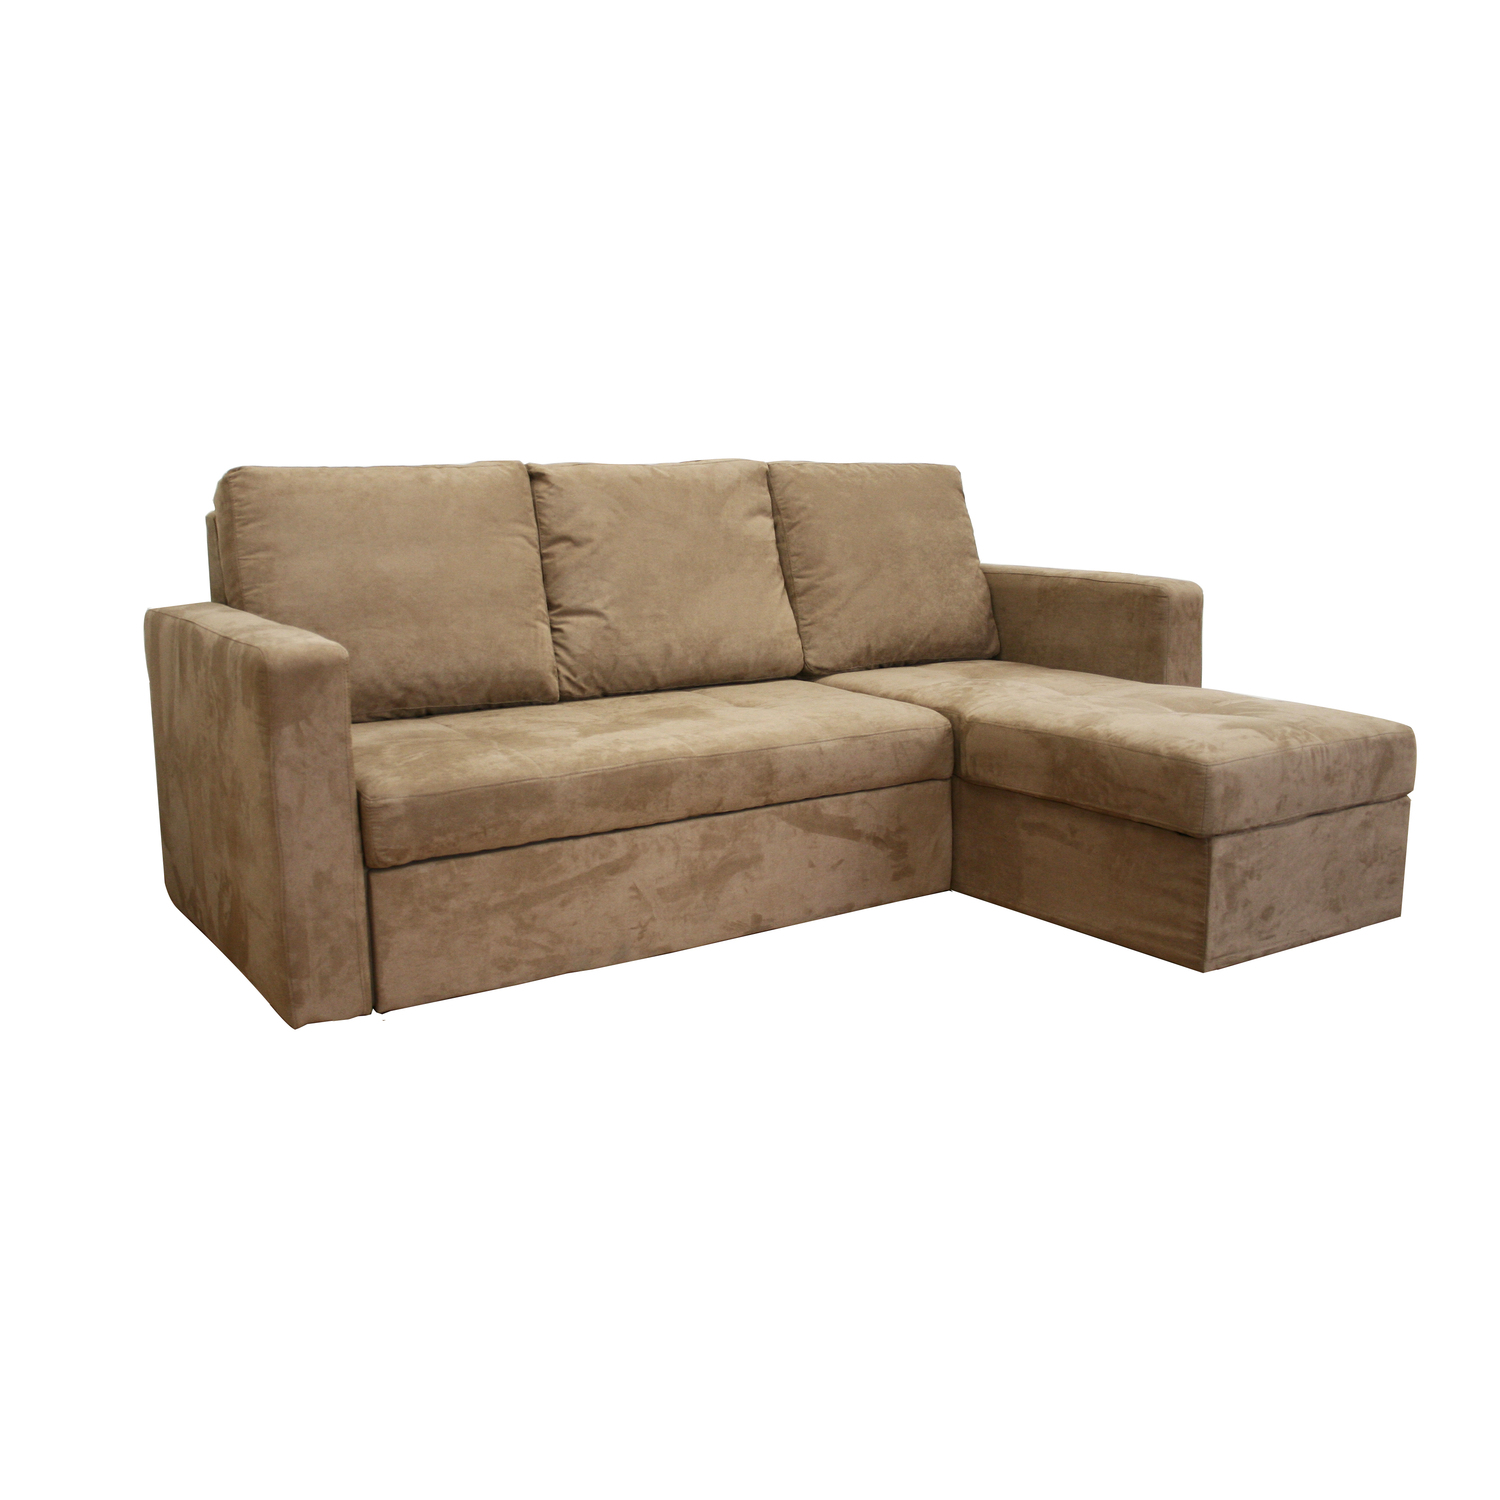 Whole sale interiors linden tan microfiber convertible for Tan couches for sale